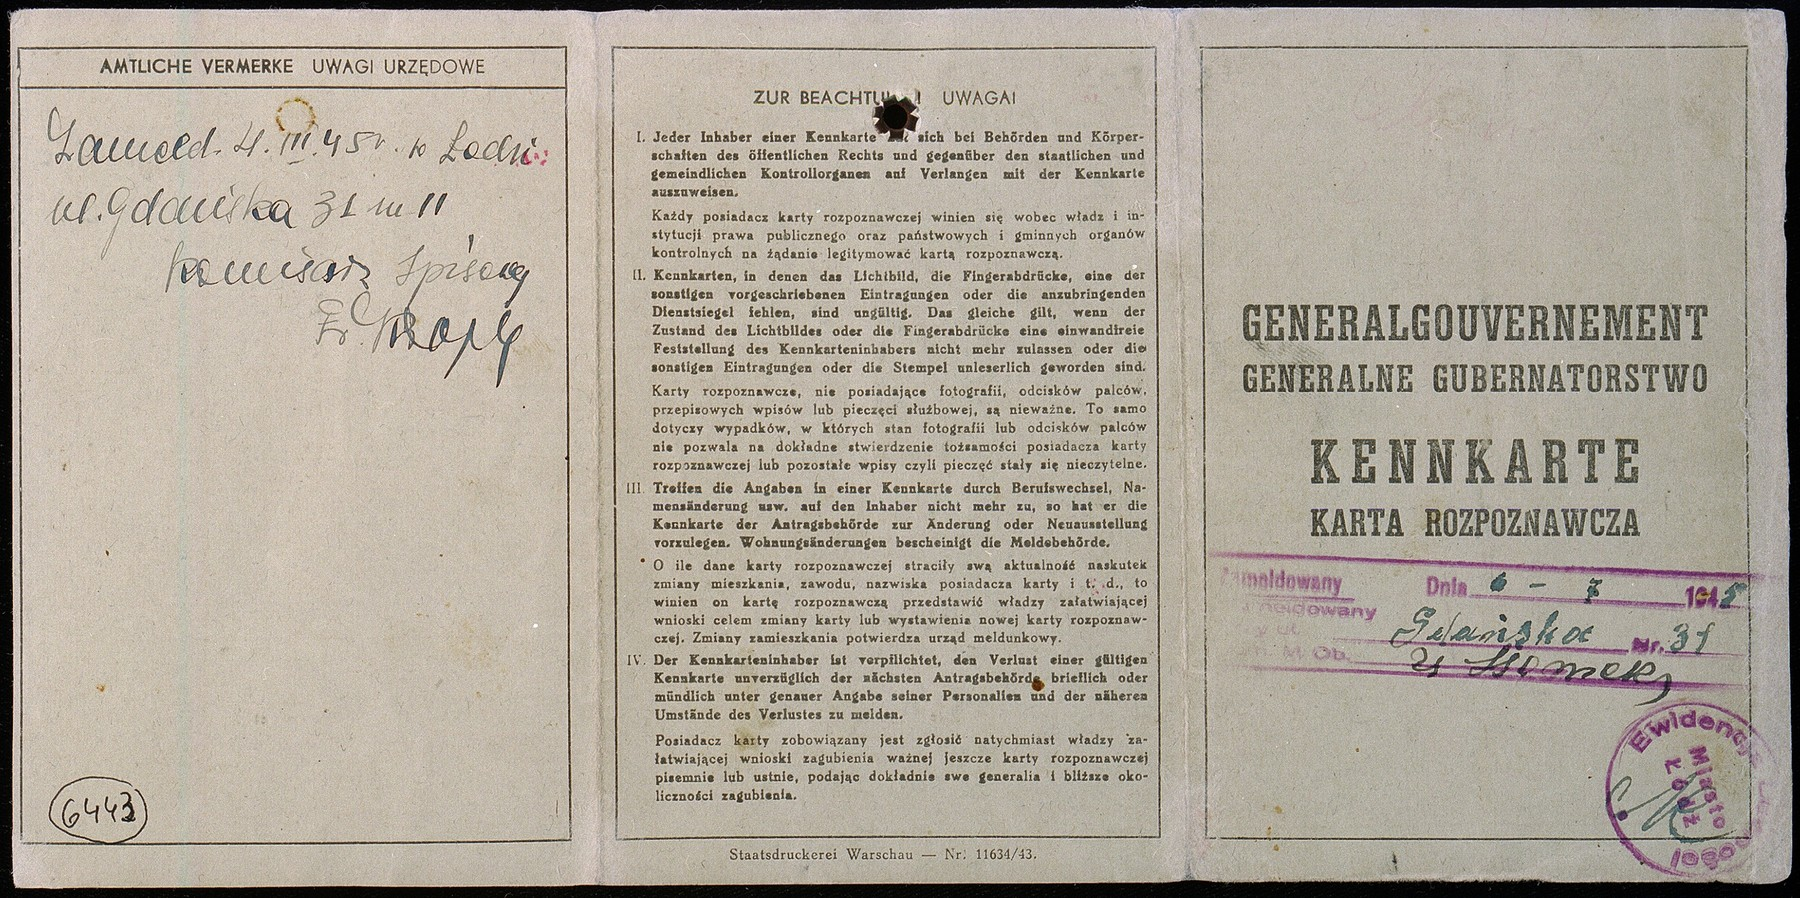 False identification card issued in name of Stanislawa Wachalska, that was used by Feigele Peltel (now Vladka Meed) while serving as a courier for the Jewish underground in Warsaw.